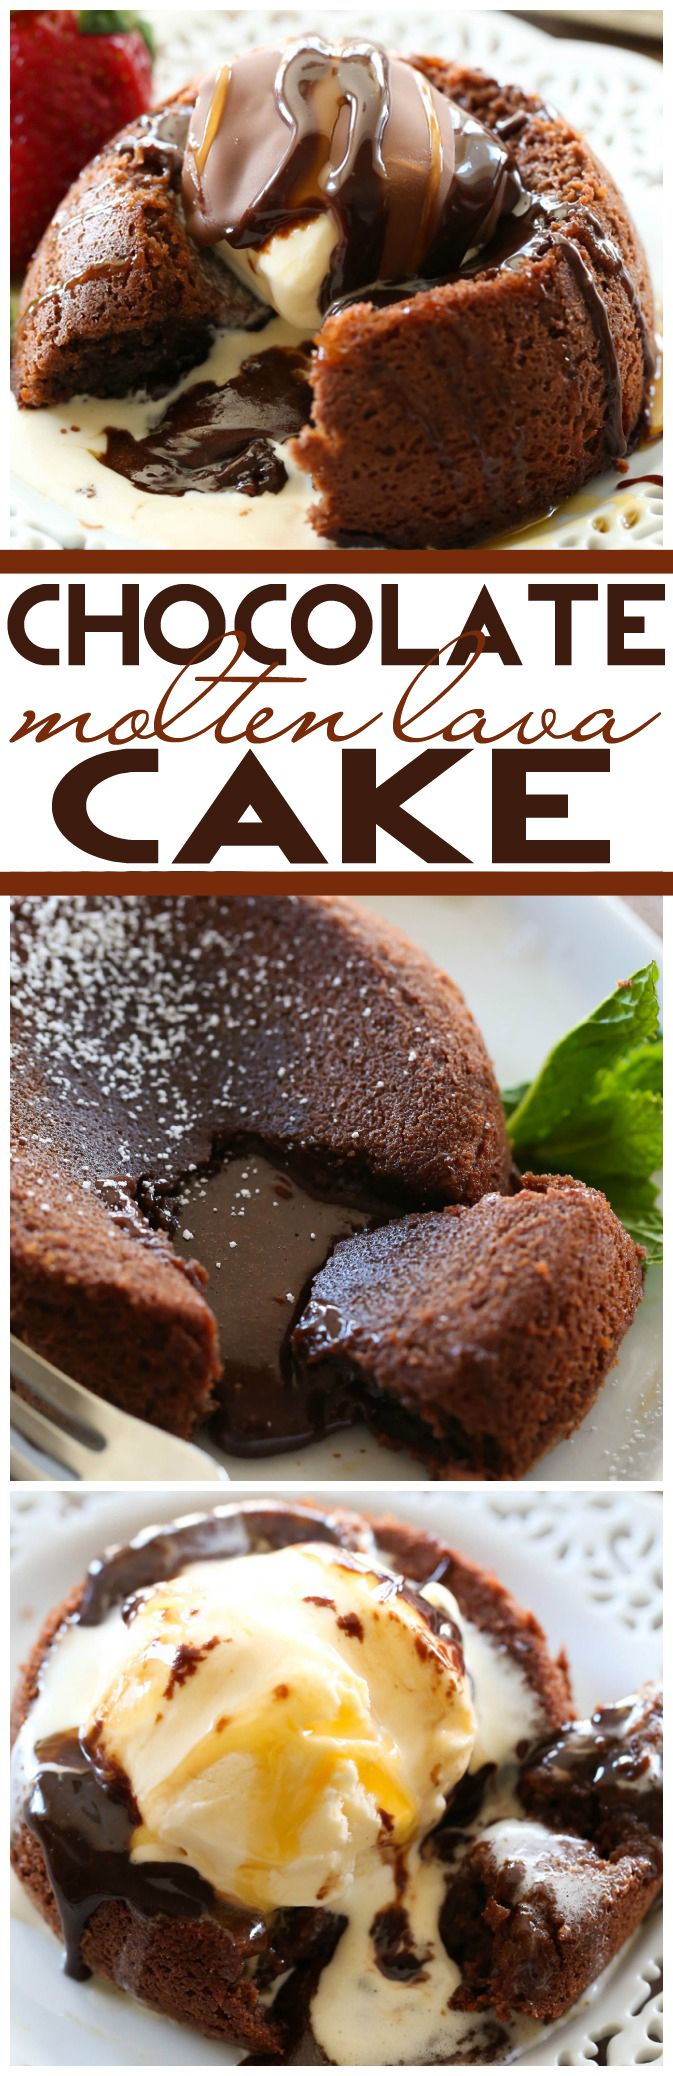 Chocolate Molten Lava Cake... This dessert is beyond amazing! It is filled with rich, creamy, velvety chocolate in every bite! It is one unforgettable cake! Click through for recipe!